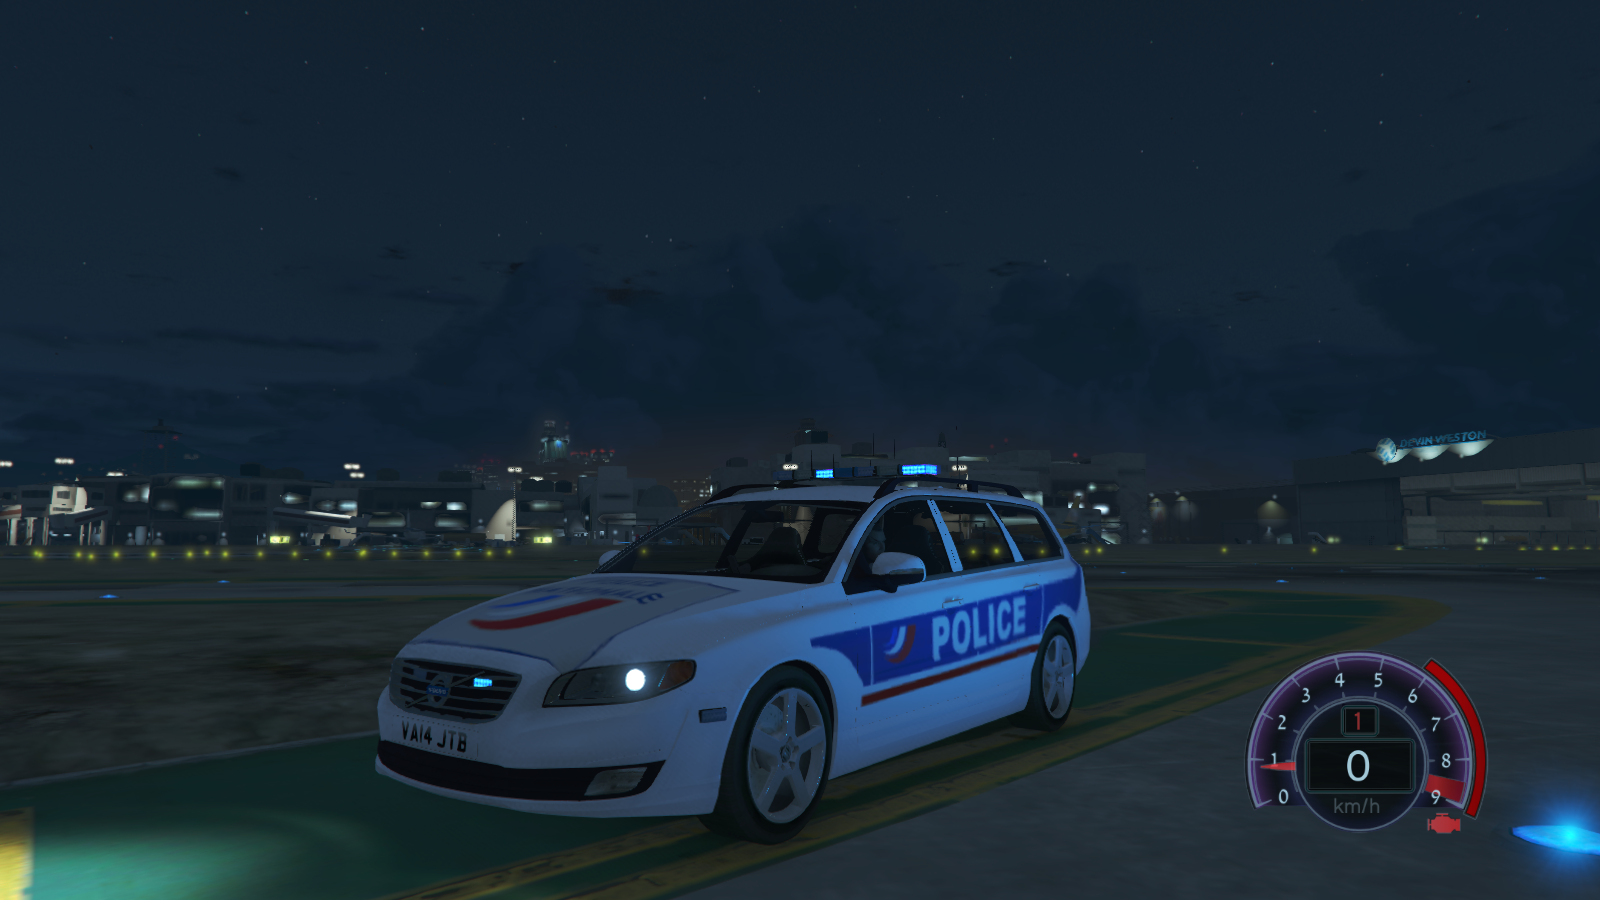 volvo v70 police nationale vehicules pour gta v sur gta modding. Black Bedroom Furniture Sets. Home Design Ideas